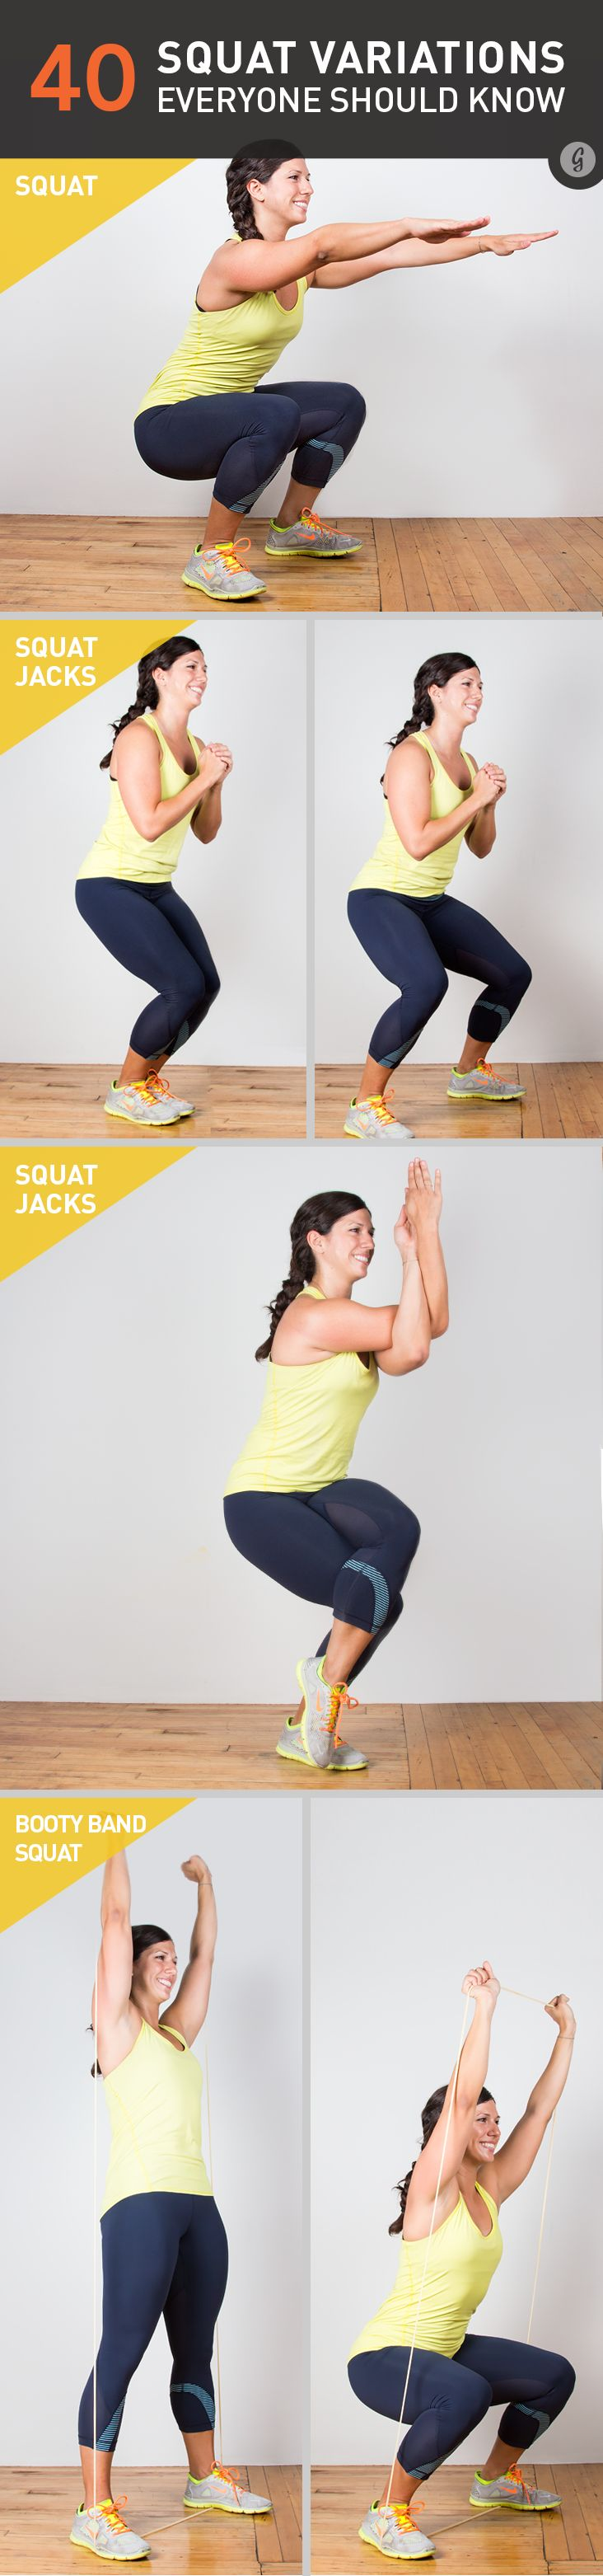 how many squat variations do you know?